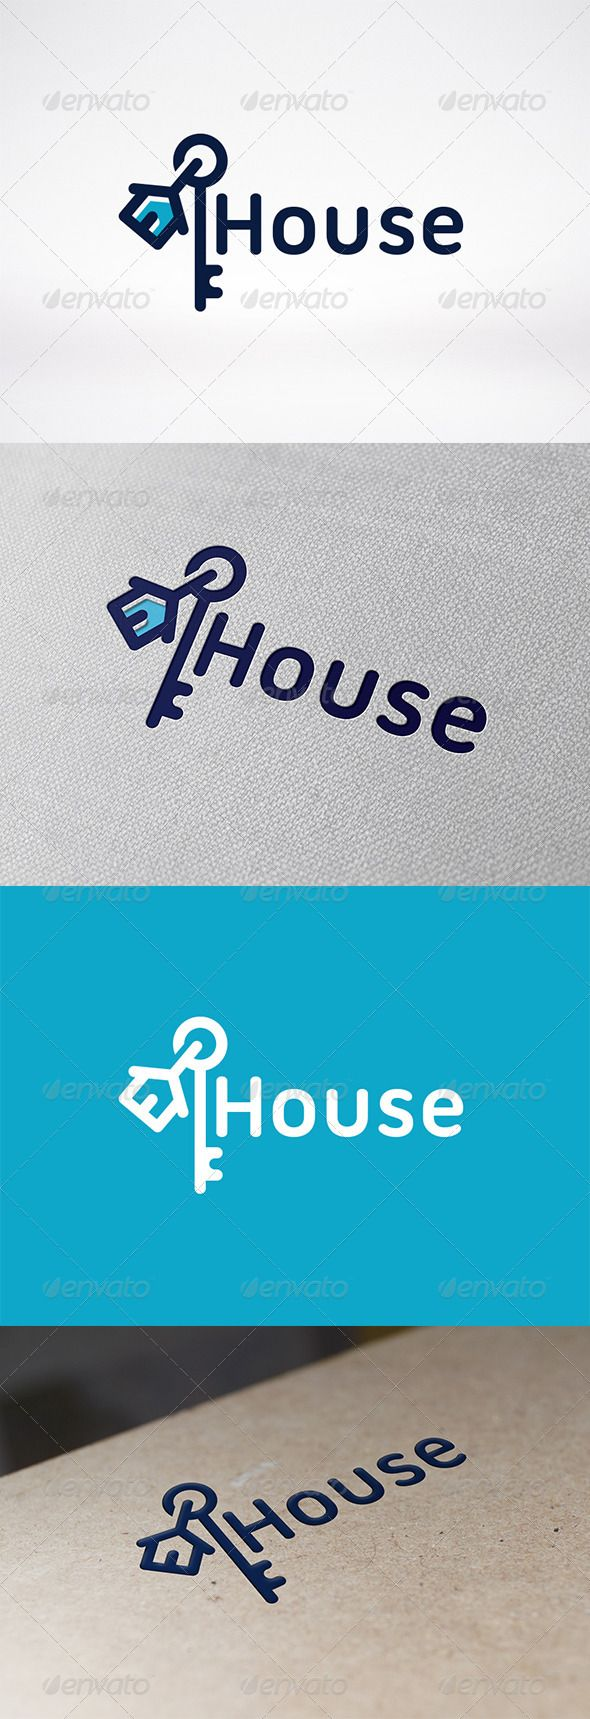 House Key Logo Template #GraphicRiver - Three color version: color, greyscale and single color. - The logo is 100% resizable. - You can change text and colors very easy using the named and organized layers that includes the file. - The typography used is Ubuntu Titling you can download here: .fontsquirrel /fonts/Ubuntu-Titling Created: 2 December 13